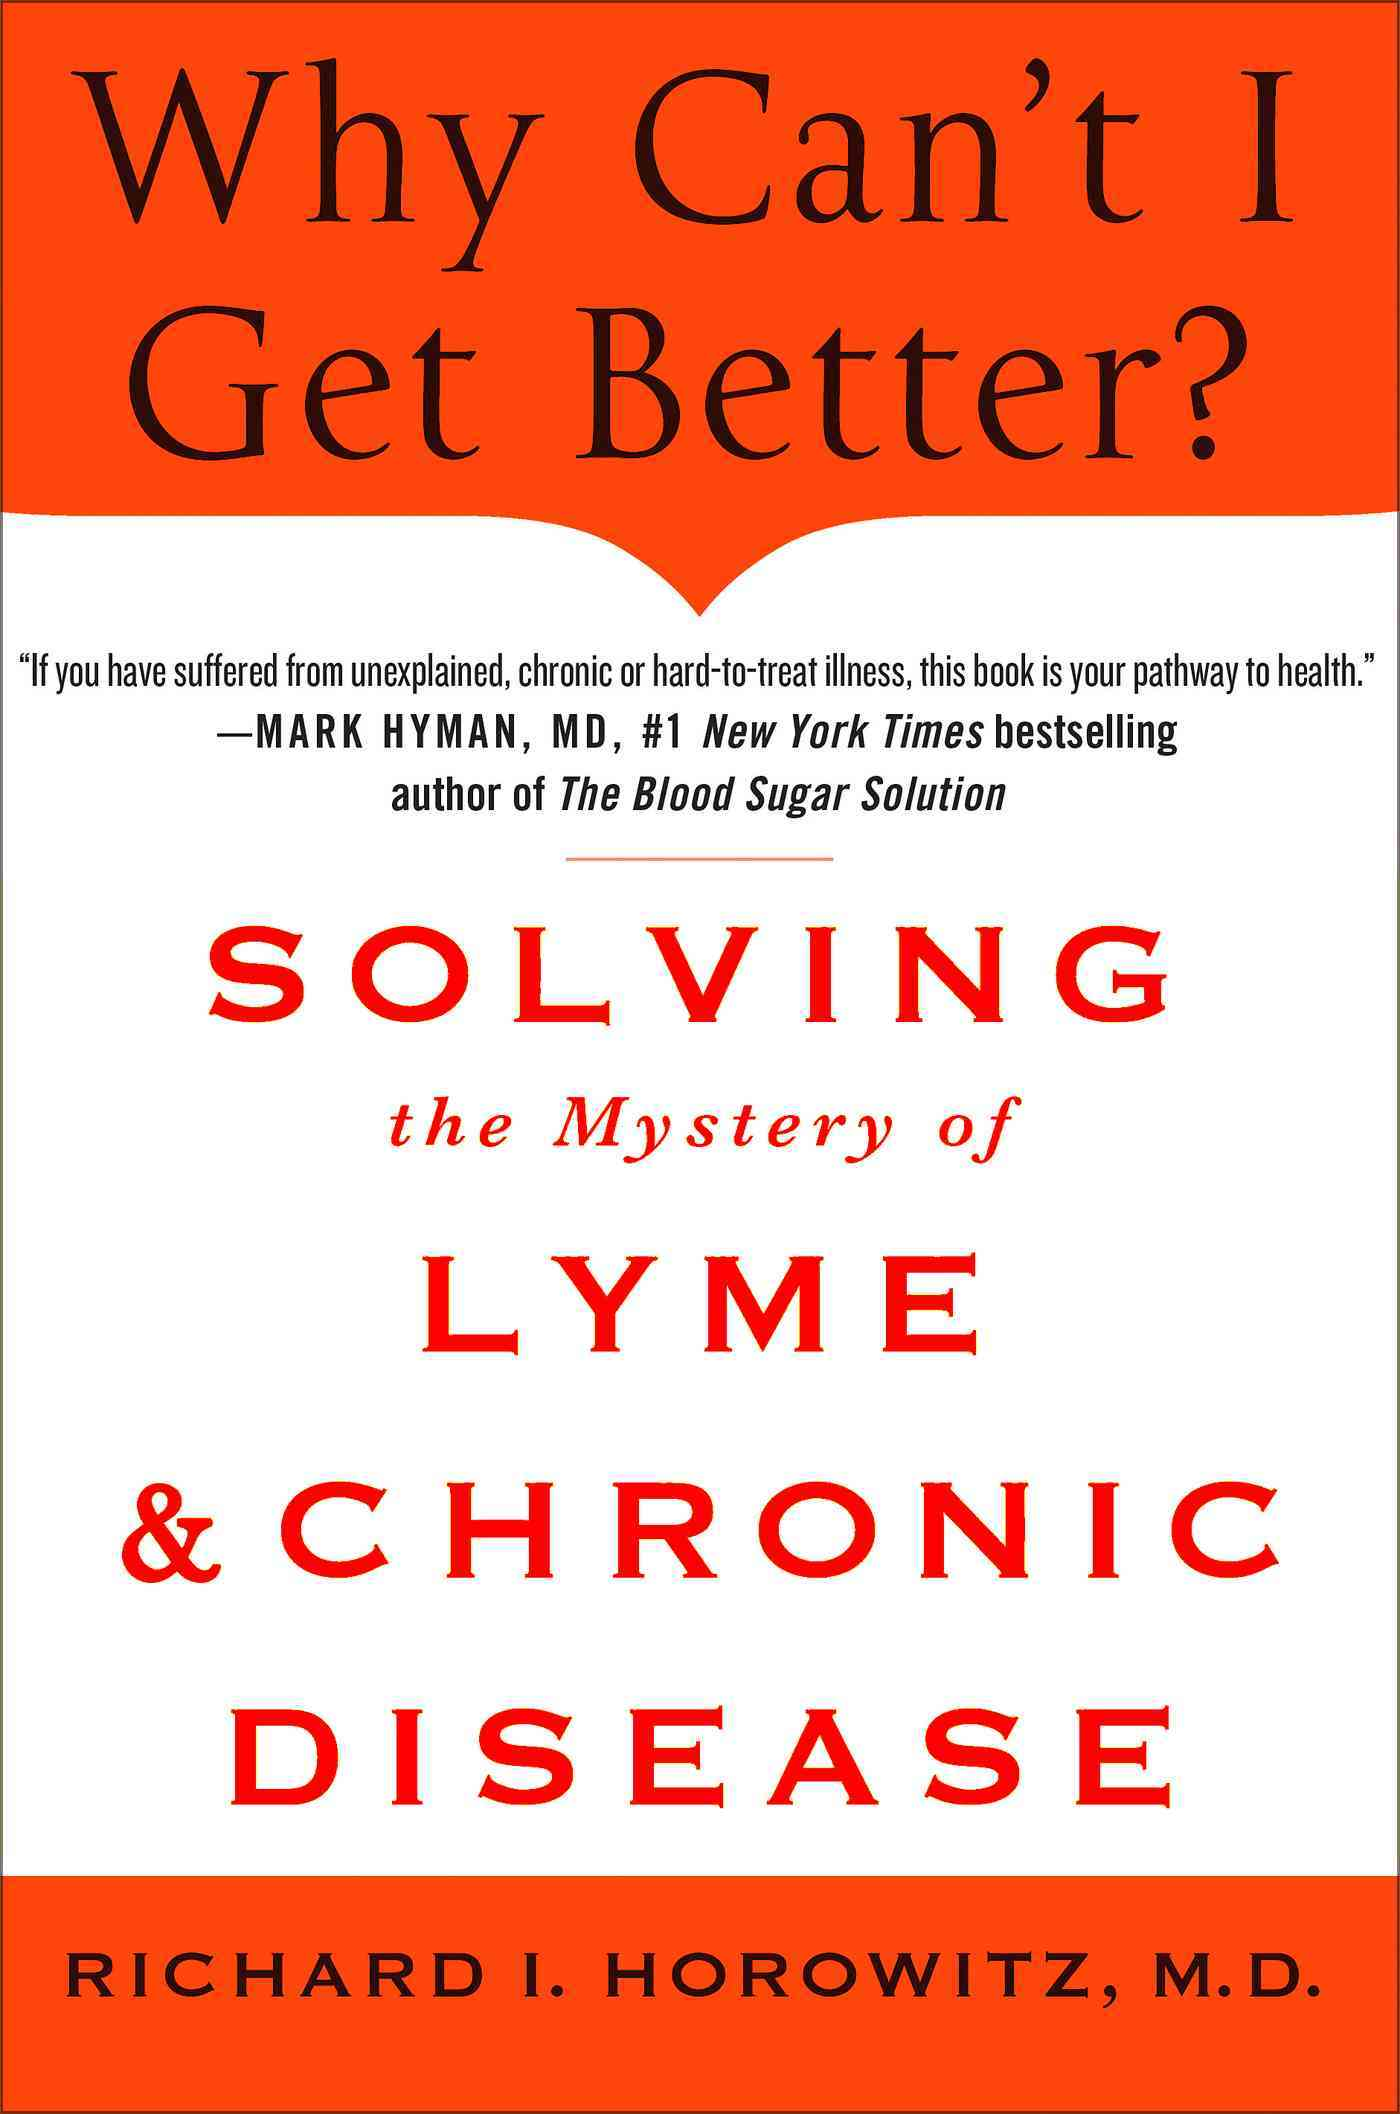 Why Can't I Get Better?: Solving the Mystery of Lyme and Chronic Disease (Hardcover)